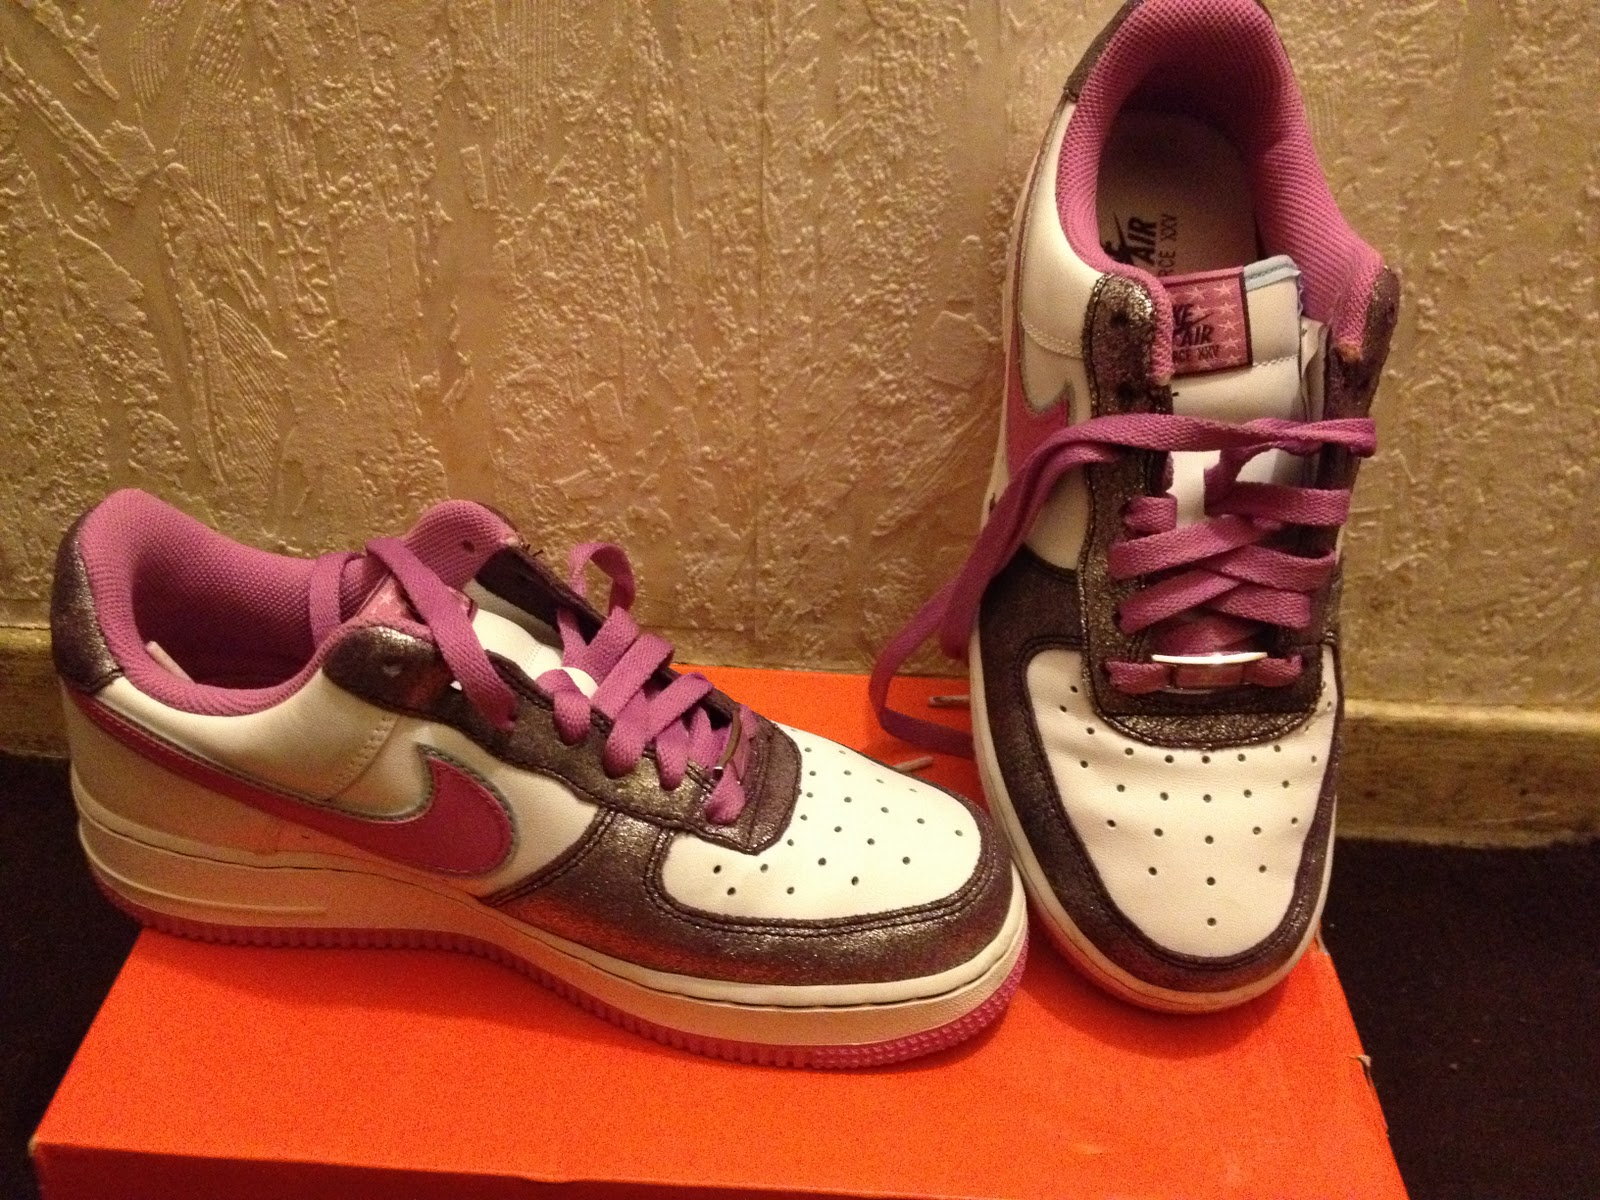 Rose Vide Mon Air Force DressingChaussure Nike OnN0vwm8